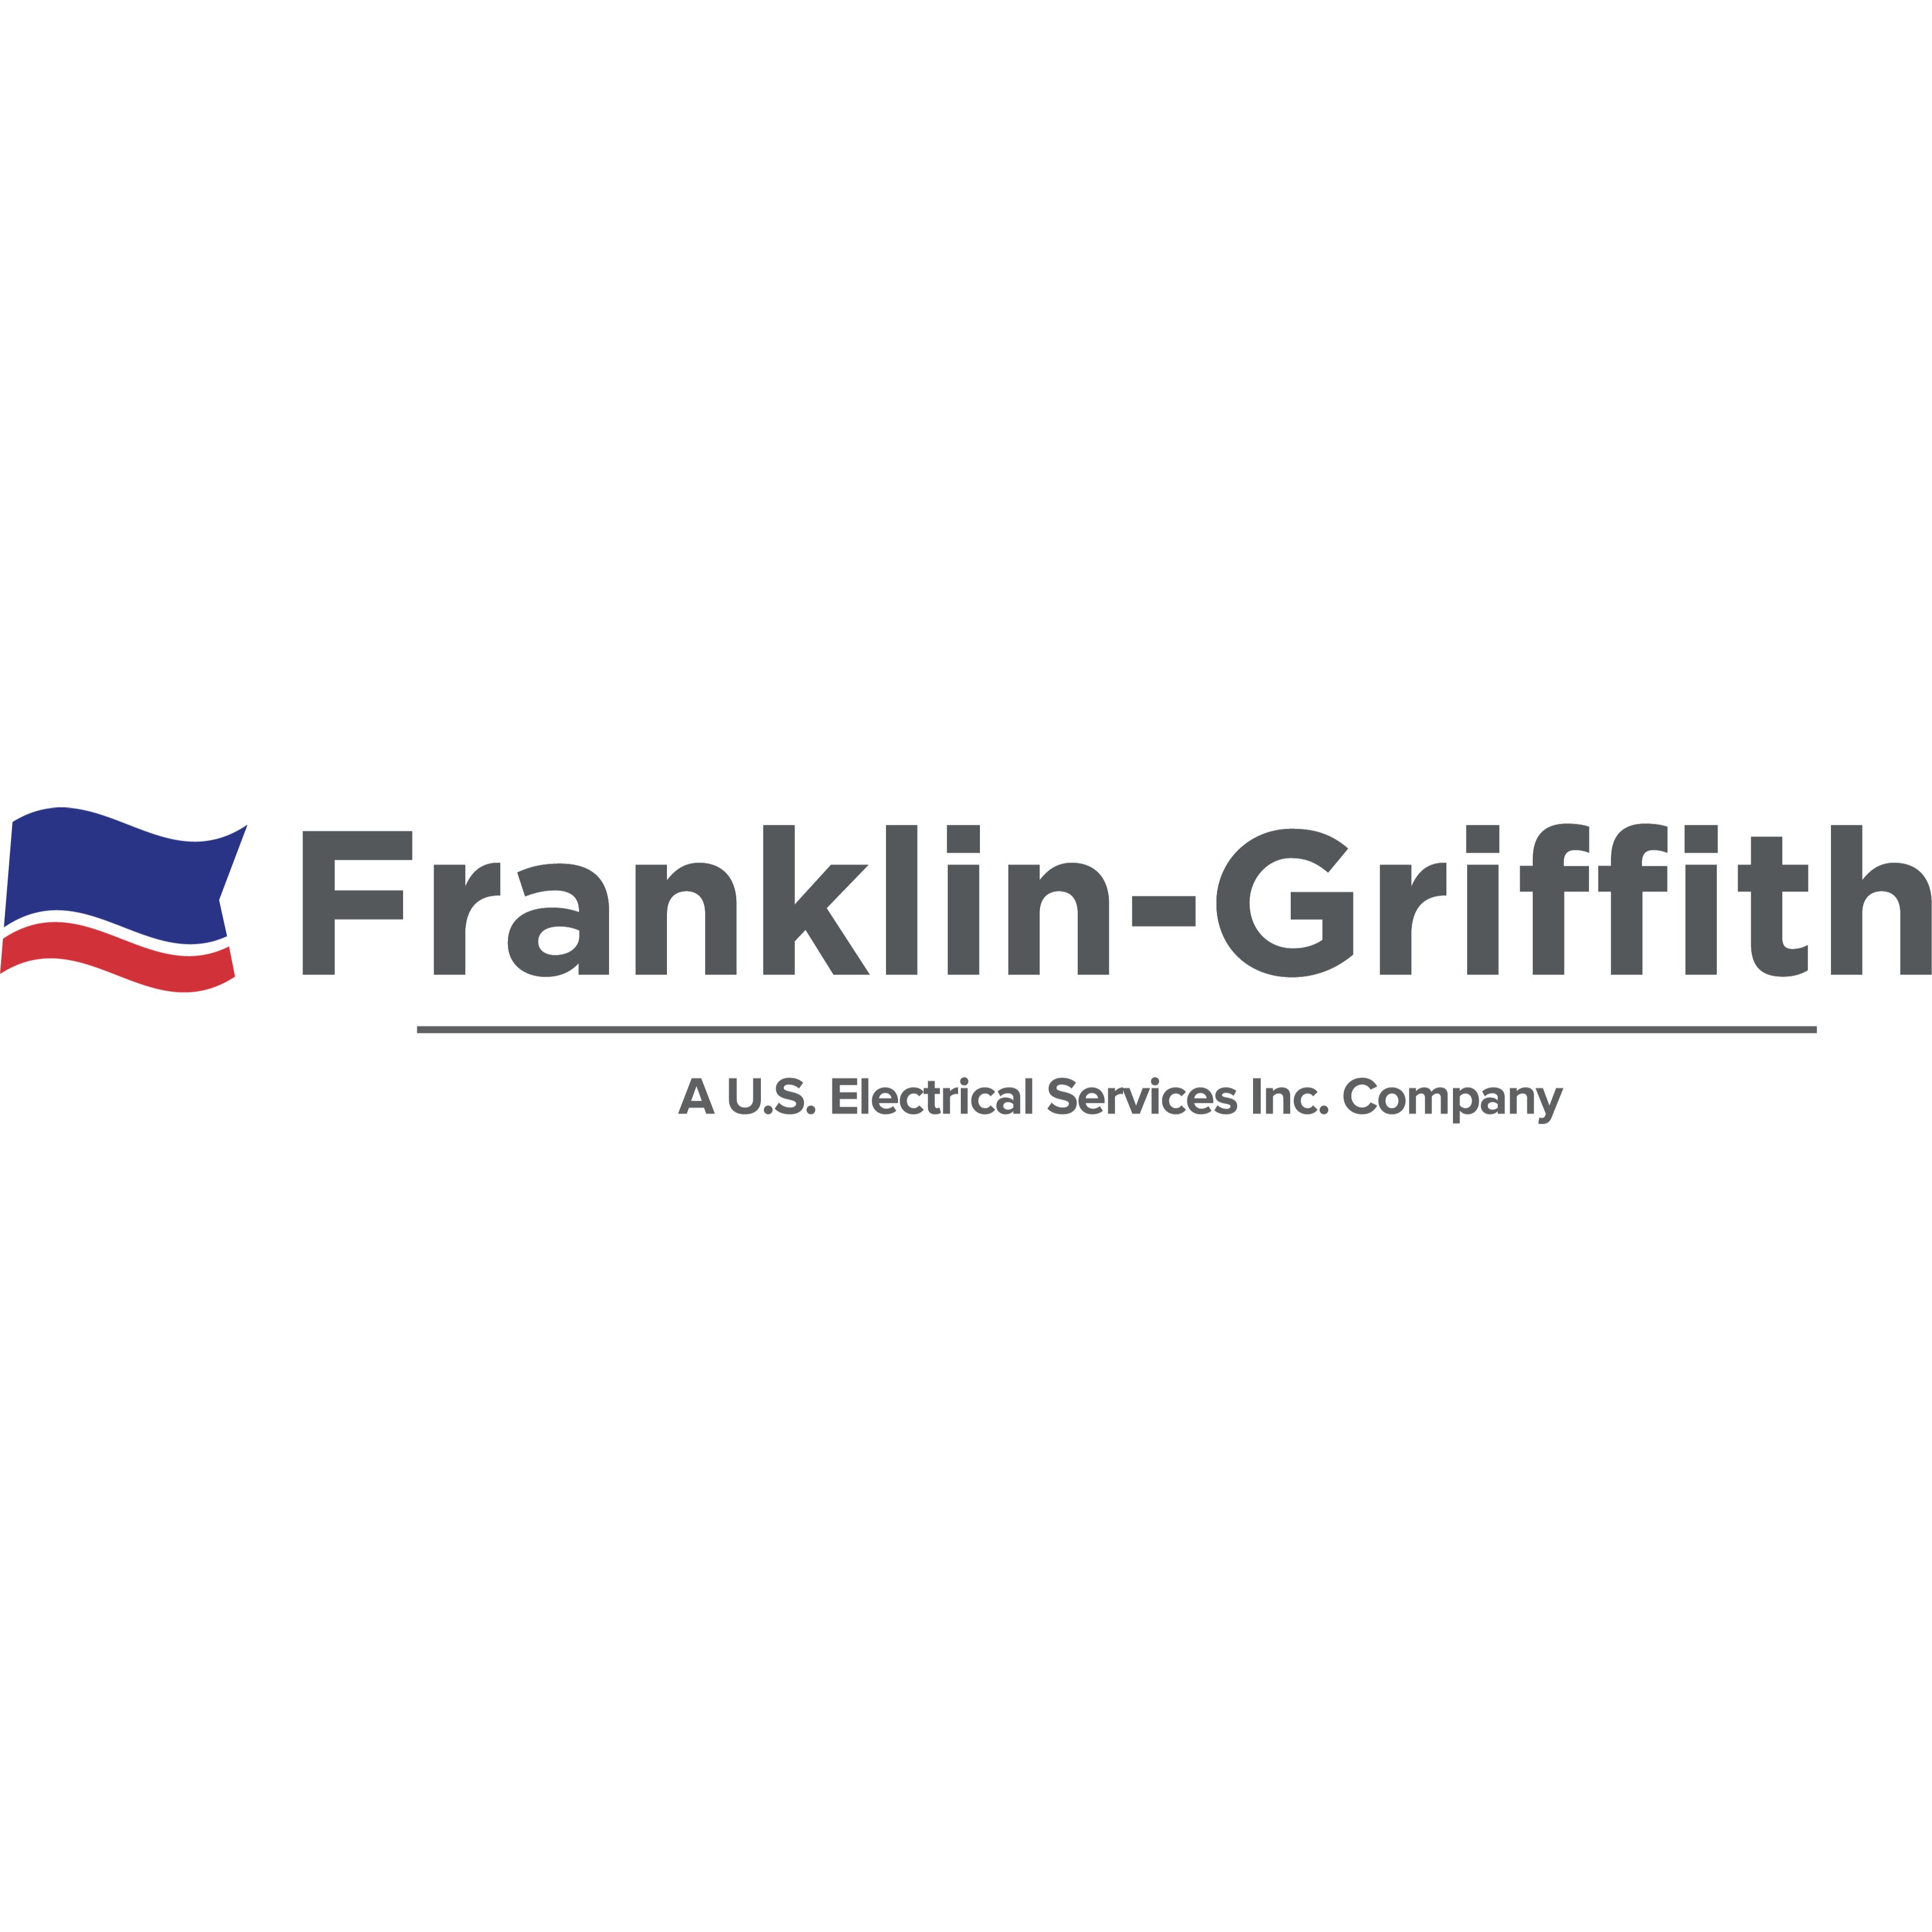 Franklin-Griffith